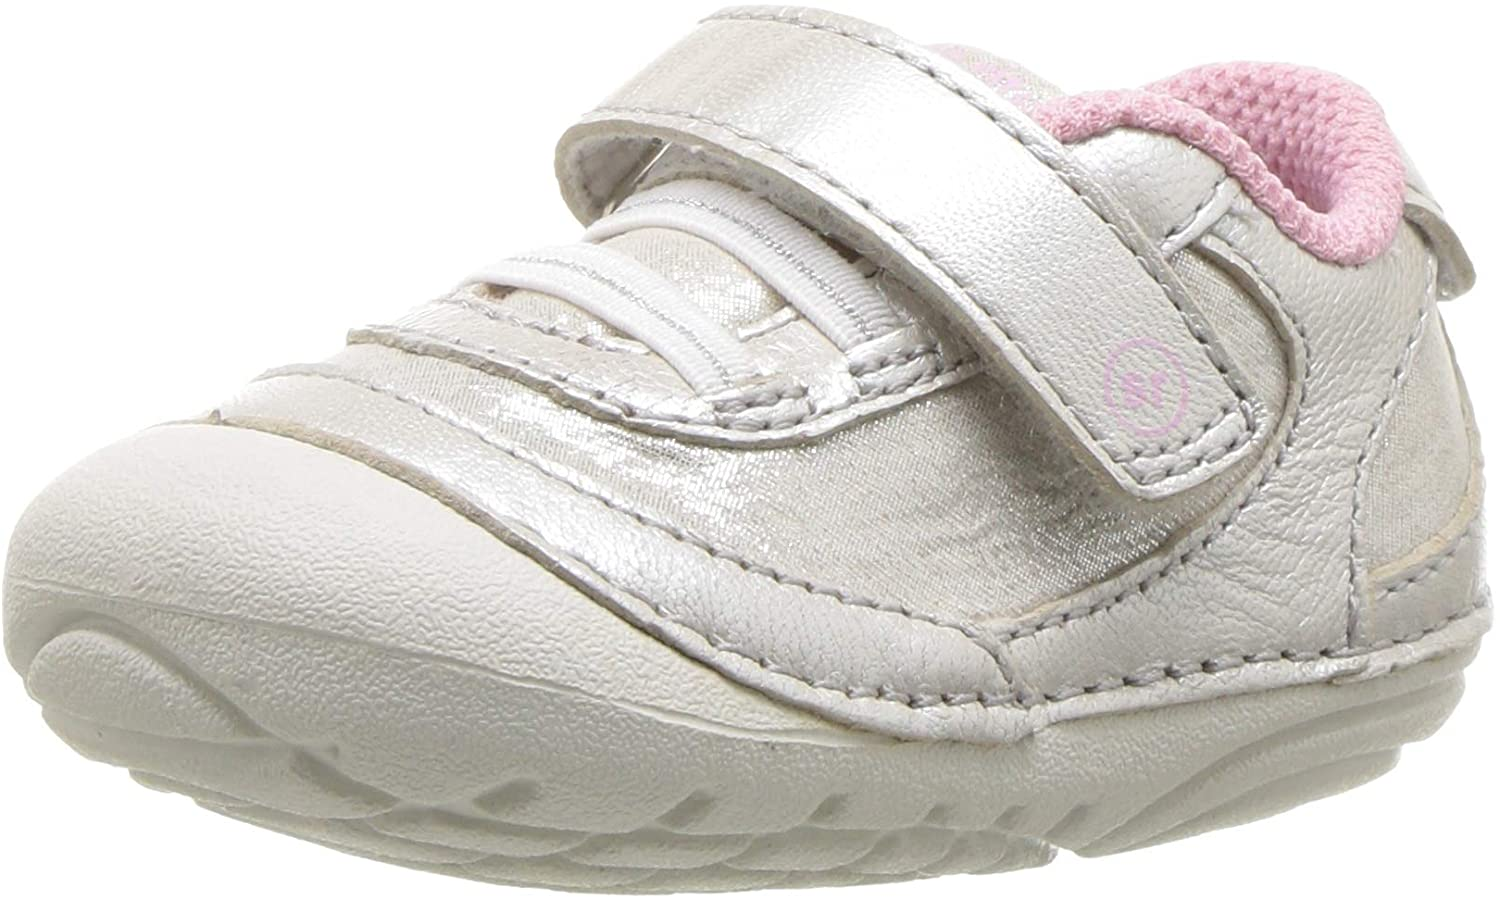 | Stride Rite Soft Motion Baby and Toddler Girls Jazzy Casual Sneaker | Sneakers